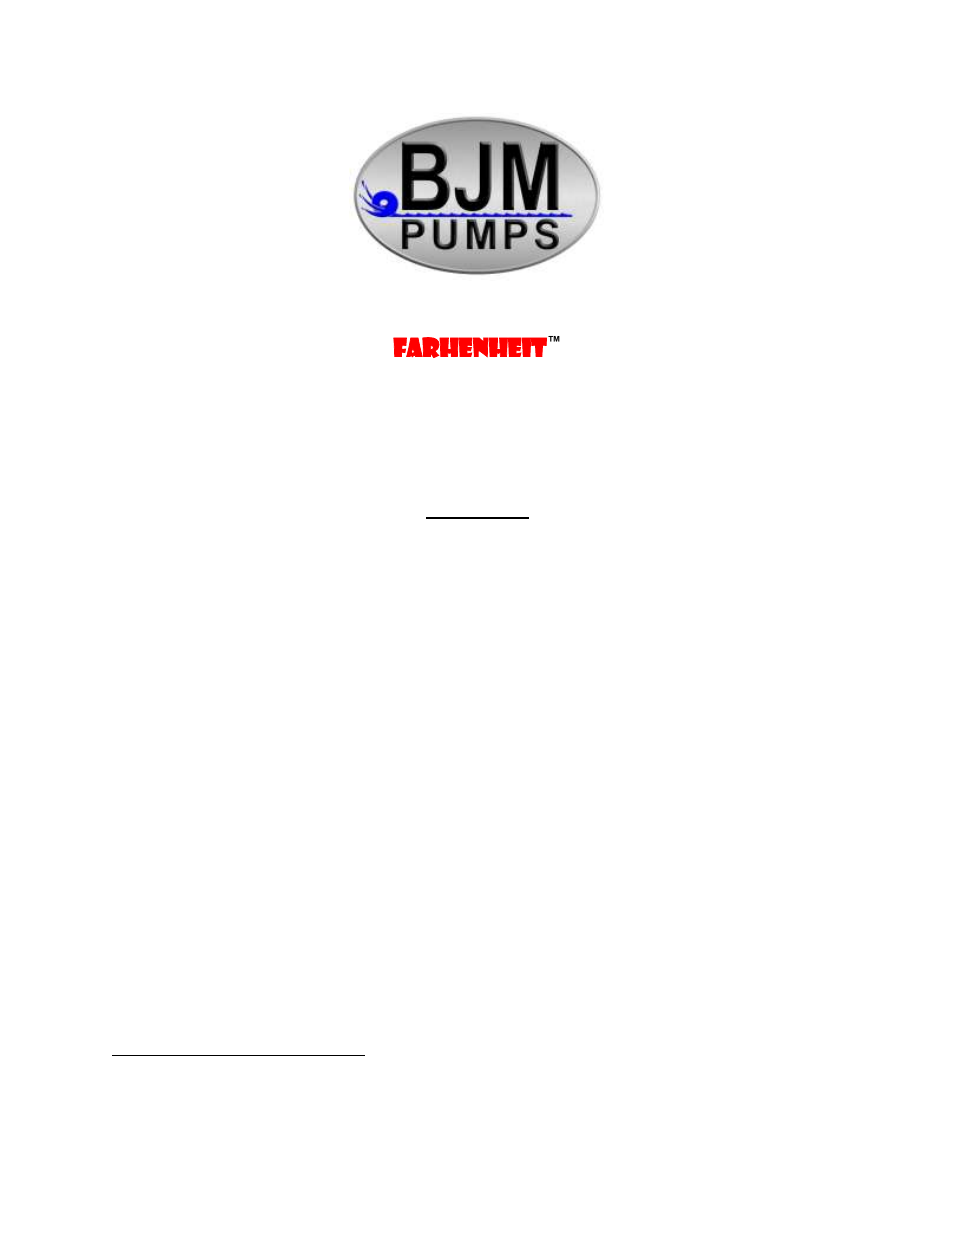 BJM Pumps KZN(R)-F SERIES HEAVY DUTY AGITATOR TOP DISCHARGE